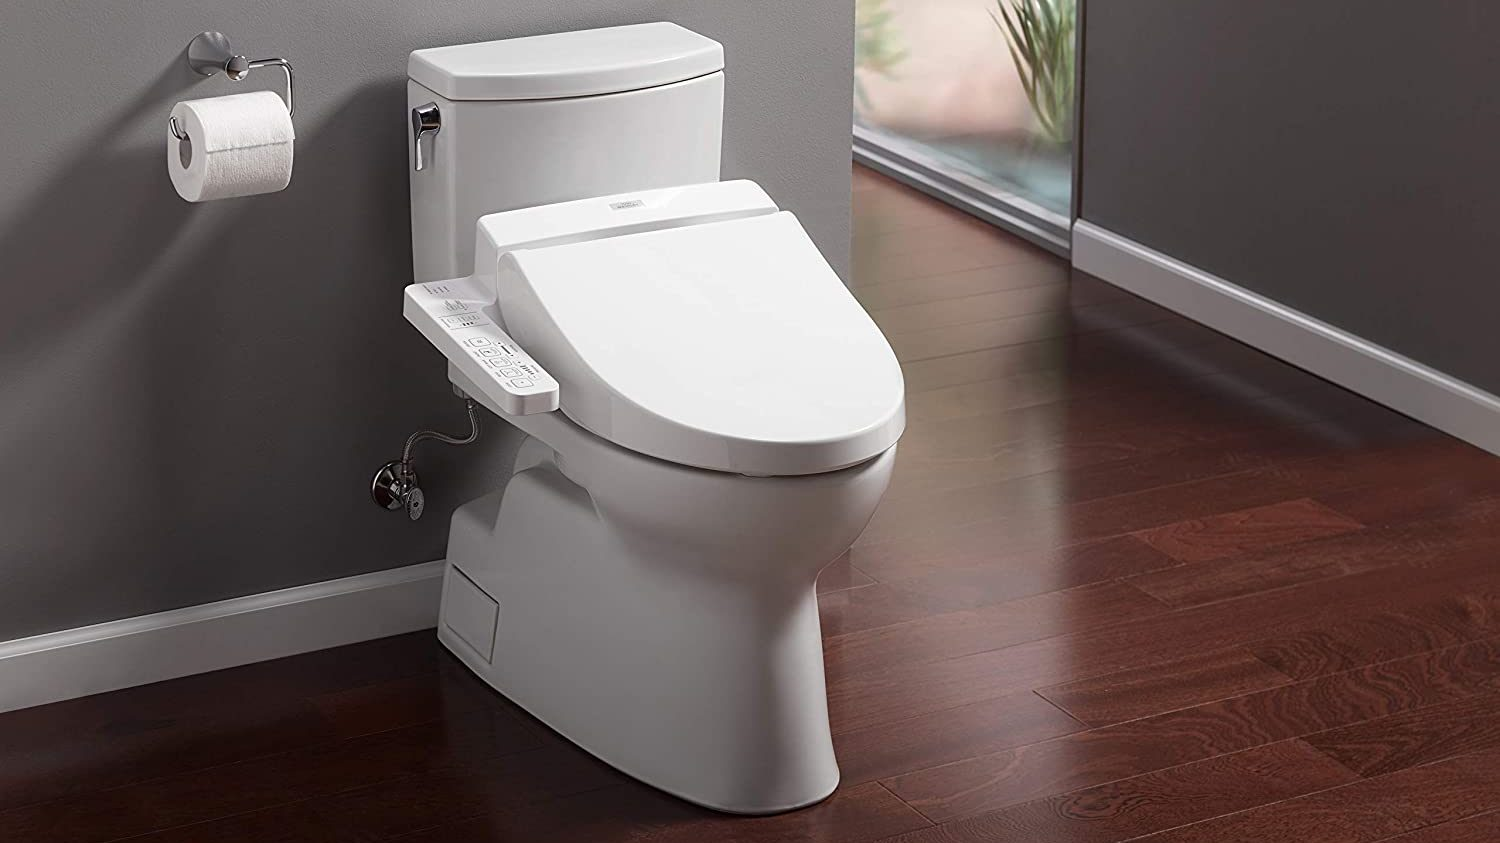 Best Features for a Bidet